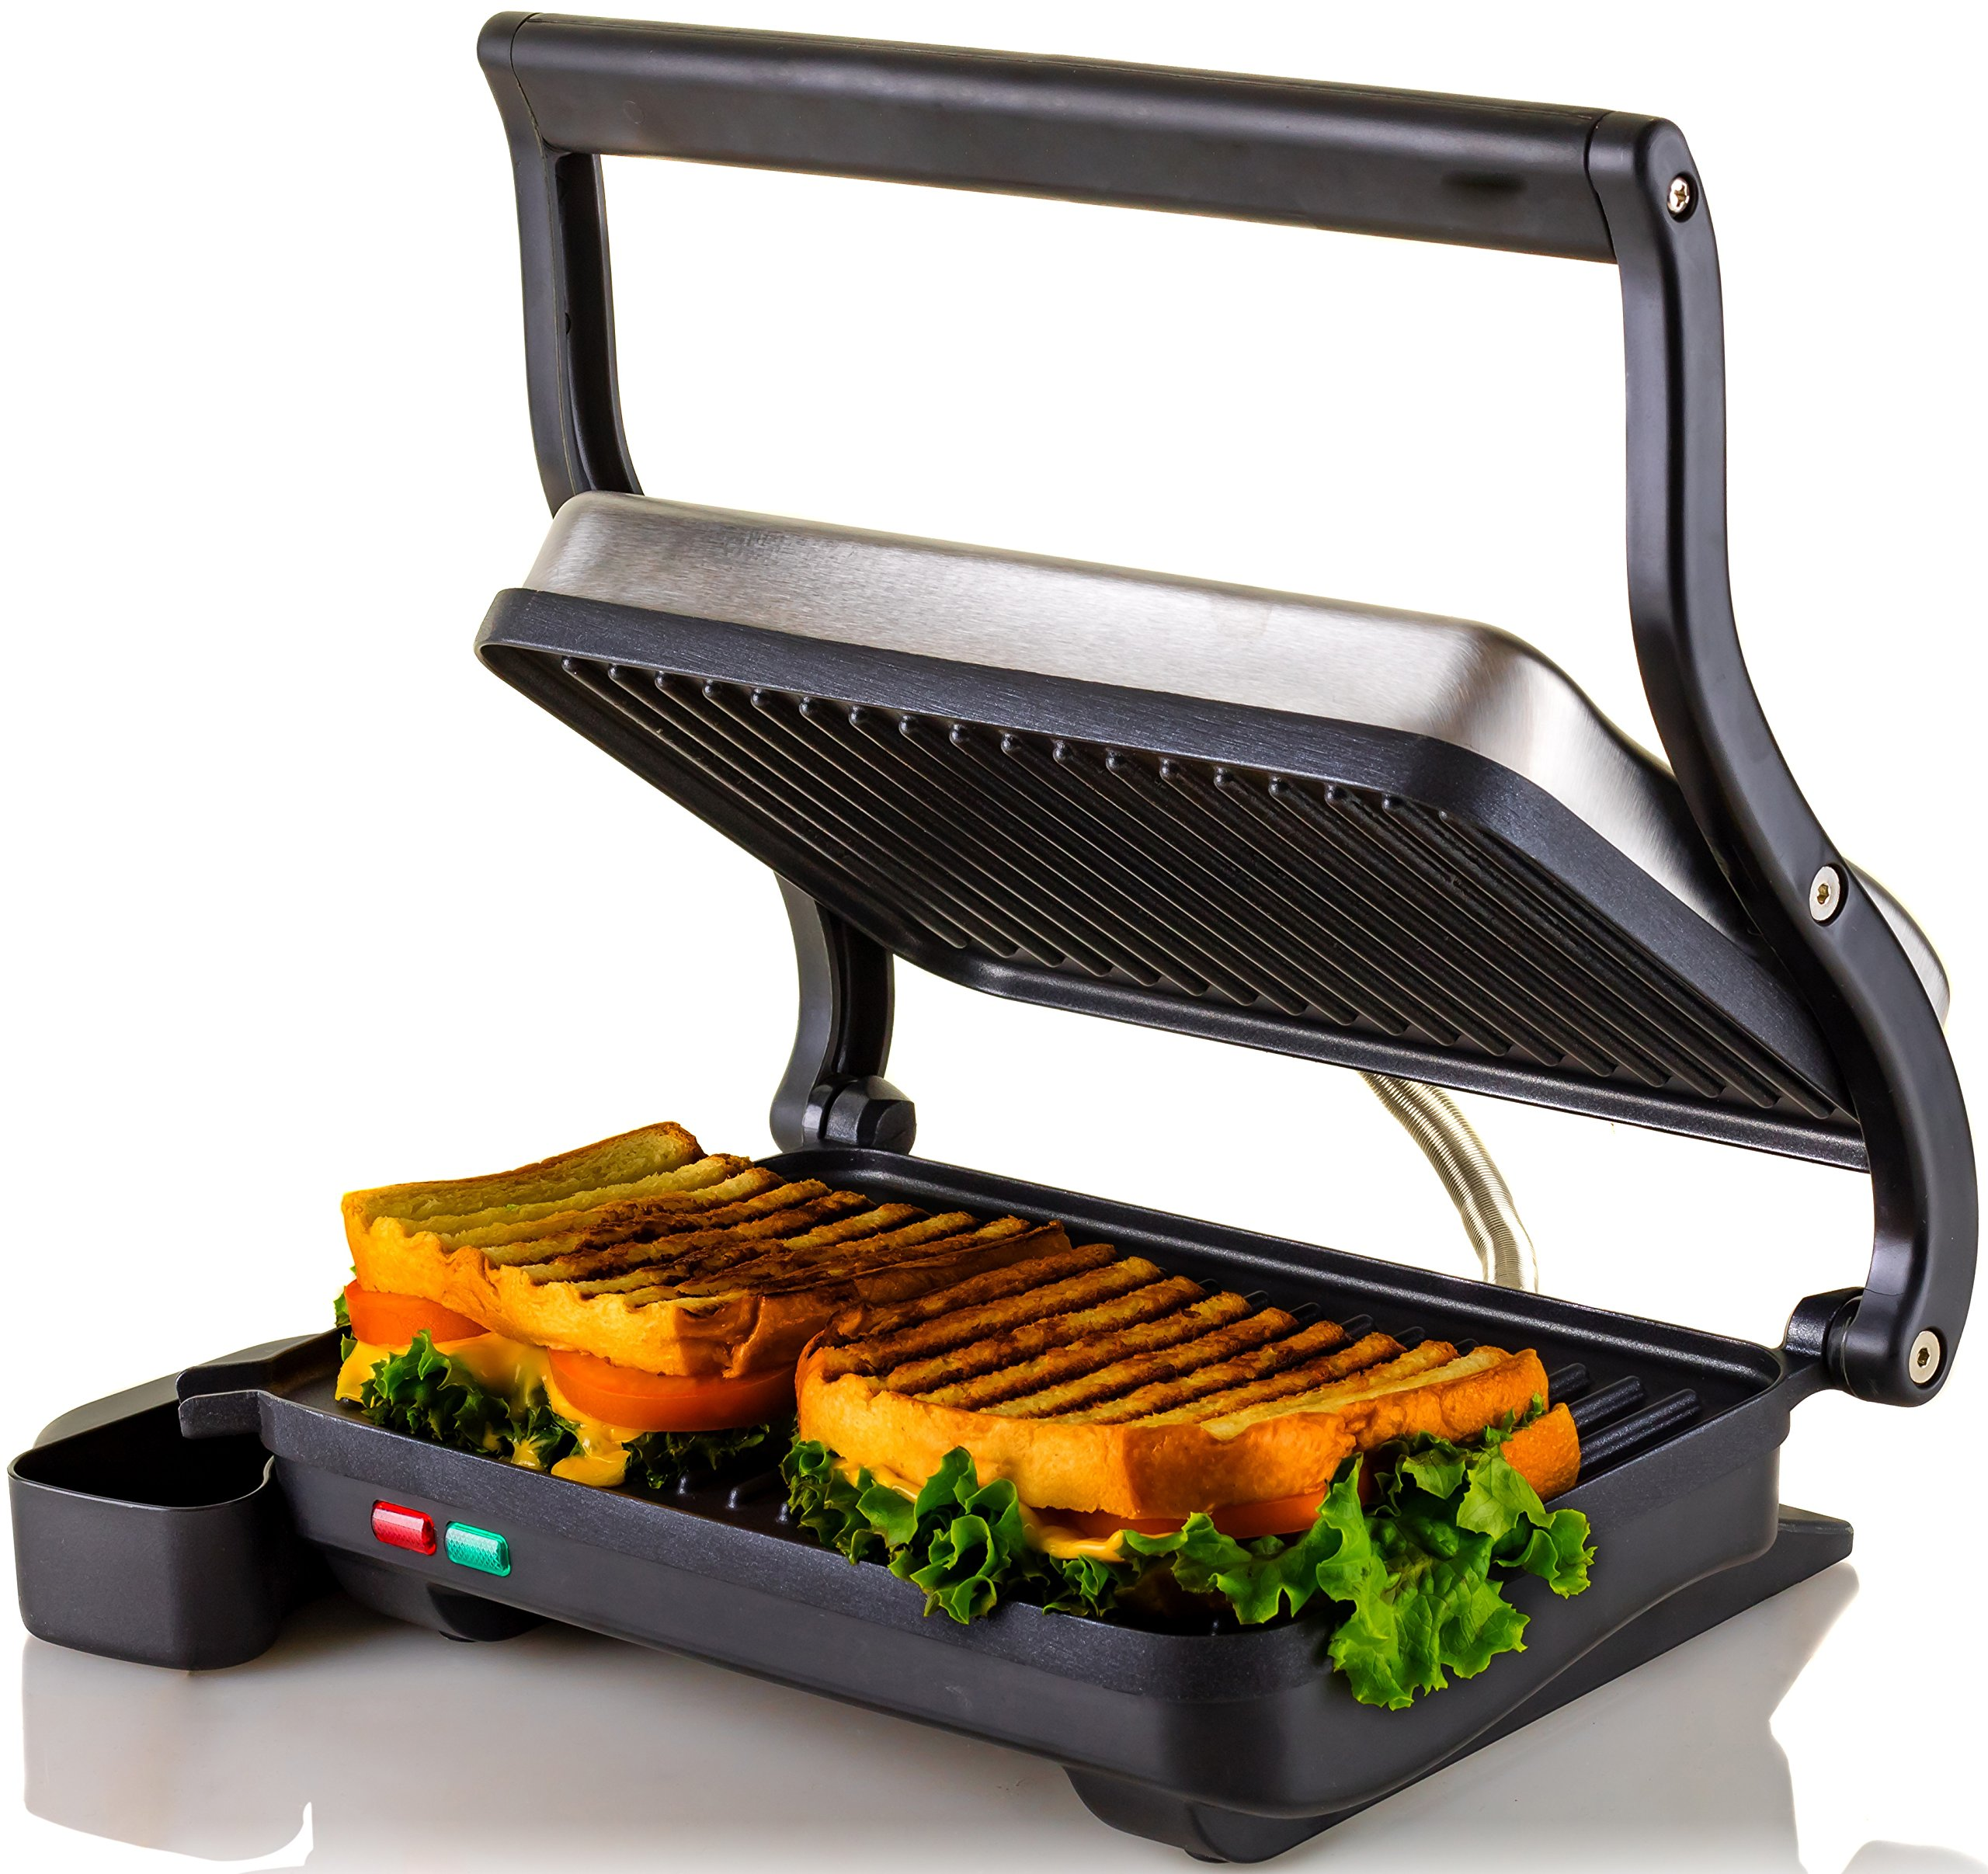 Ovente Electric Indoor Panini Press Grill with Non-Stick Double Flat Cooking Plate & Removable Drip Tray, Countertop Sandwich Maker Toaster Easy Storage & Clean Perfect for Breakfast, Silver GP0620BR